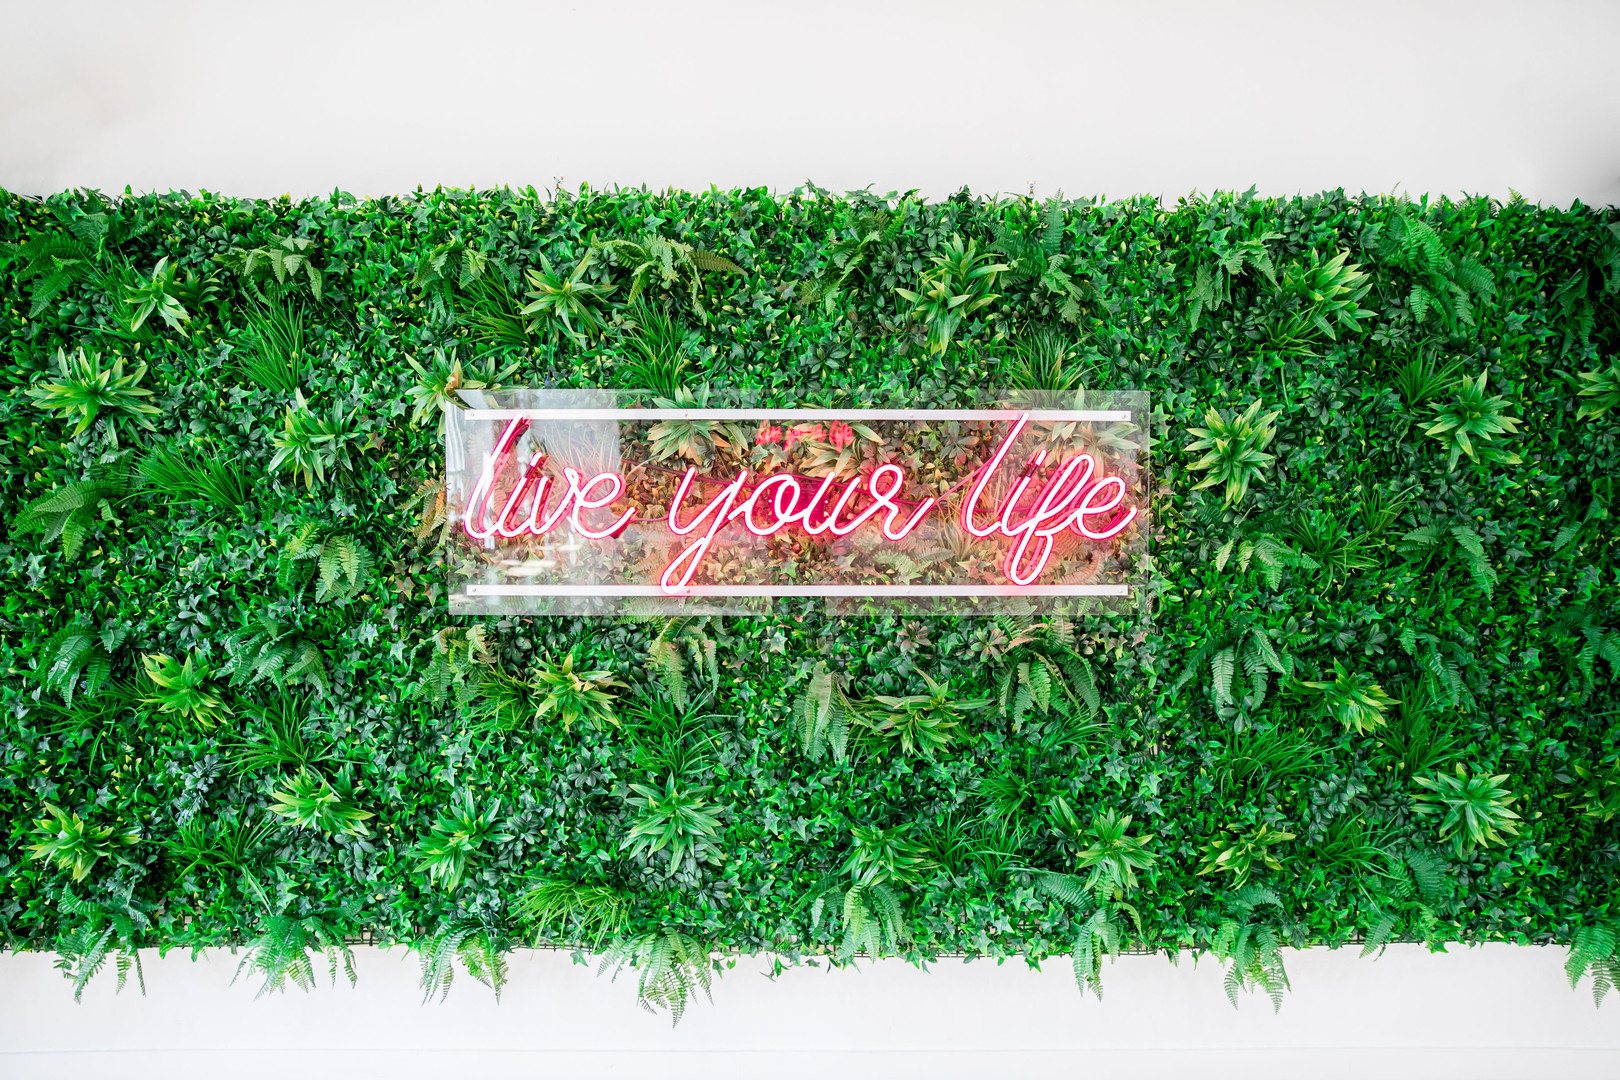 Rae Studios Live Your Life Neon Sign Floral Plant Wall